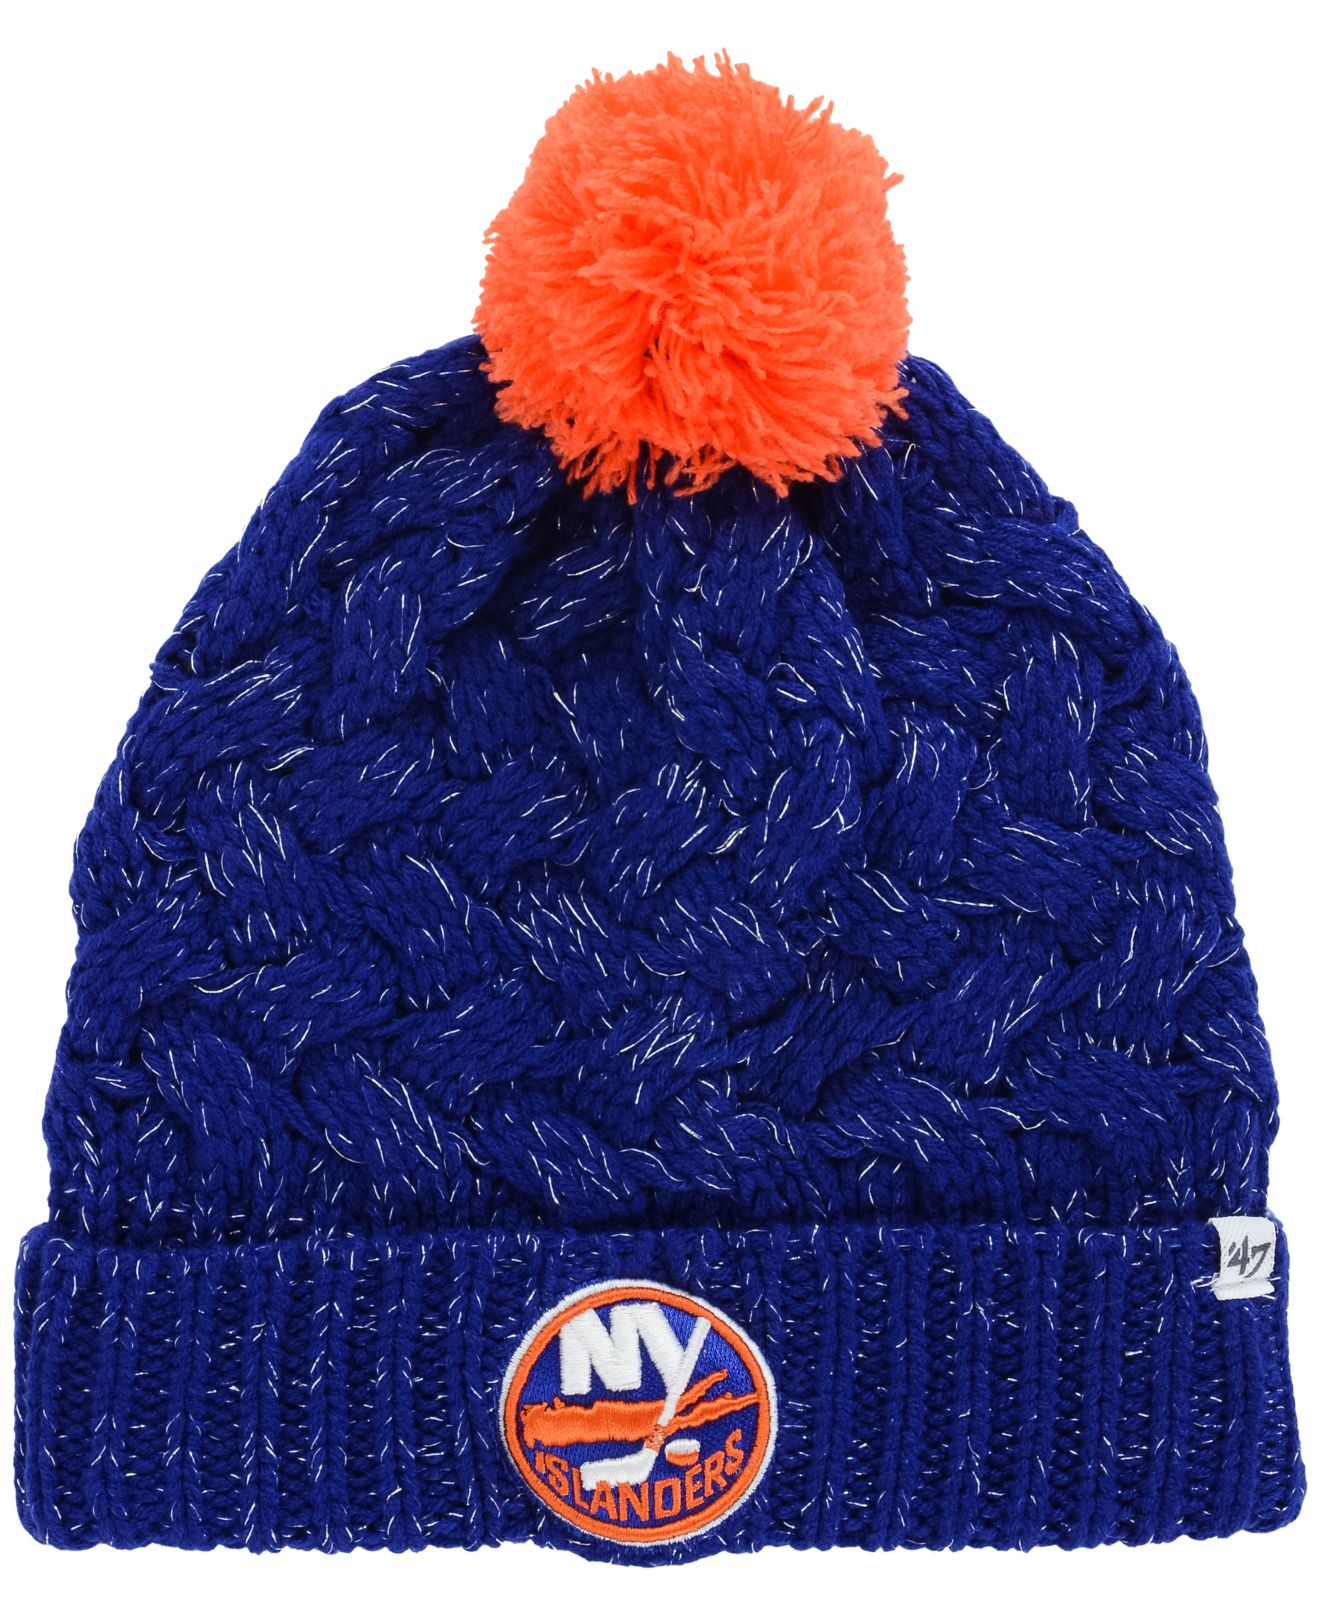 3489f94d8 47 Brand Women's New York Islanders Fiona Pom Knit Hat in Blue - Lyst